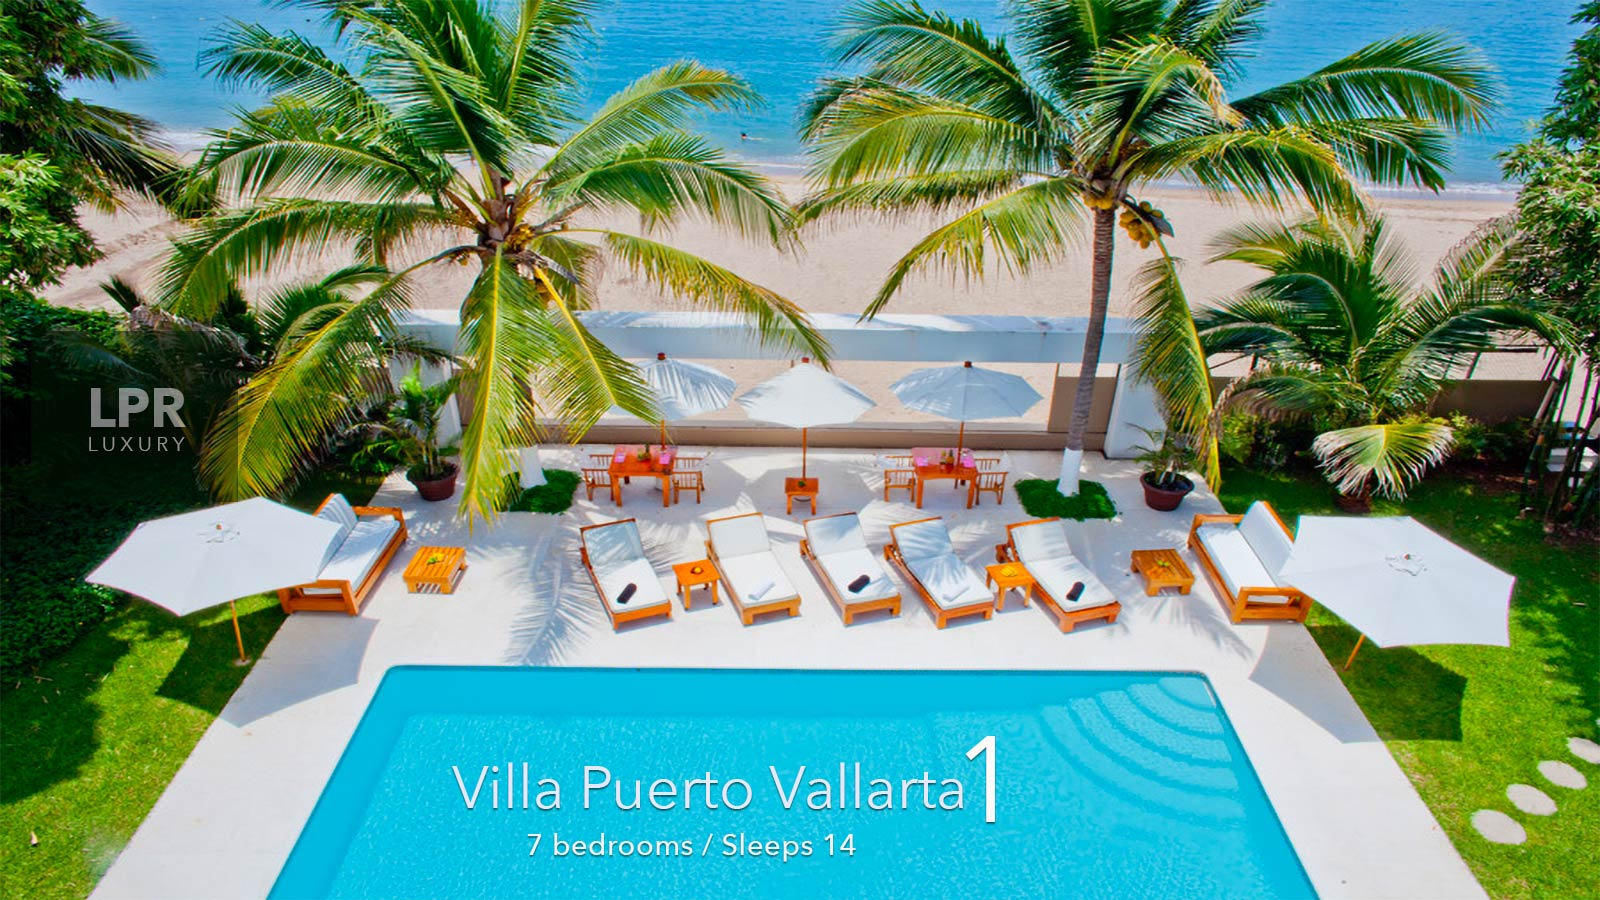 Villa Puerto Vallarta 1 - Downtown Puerto Vallarta just a short walk from the Malecon boardwalk of Puerto Vallarta - Perfect location for easy access to nightlife and dining.